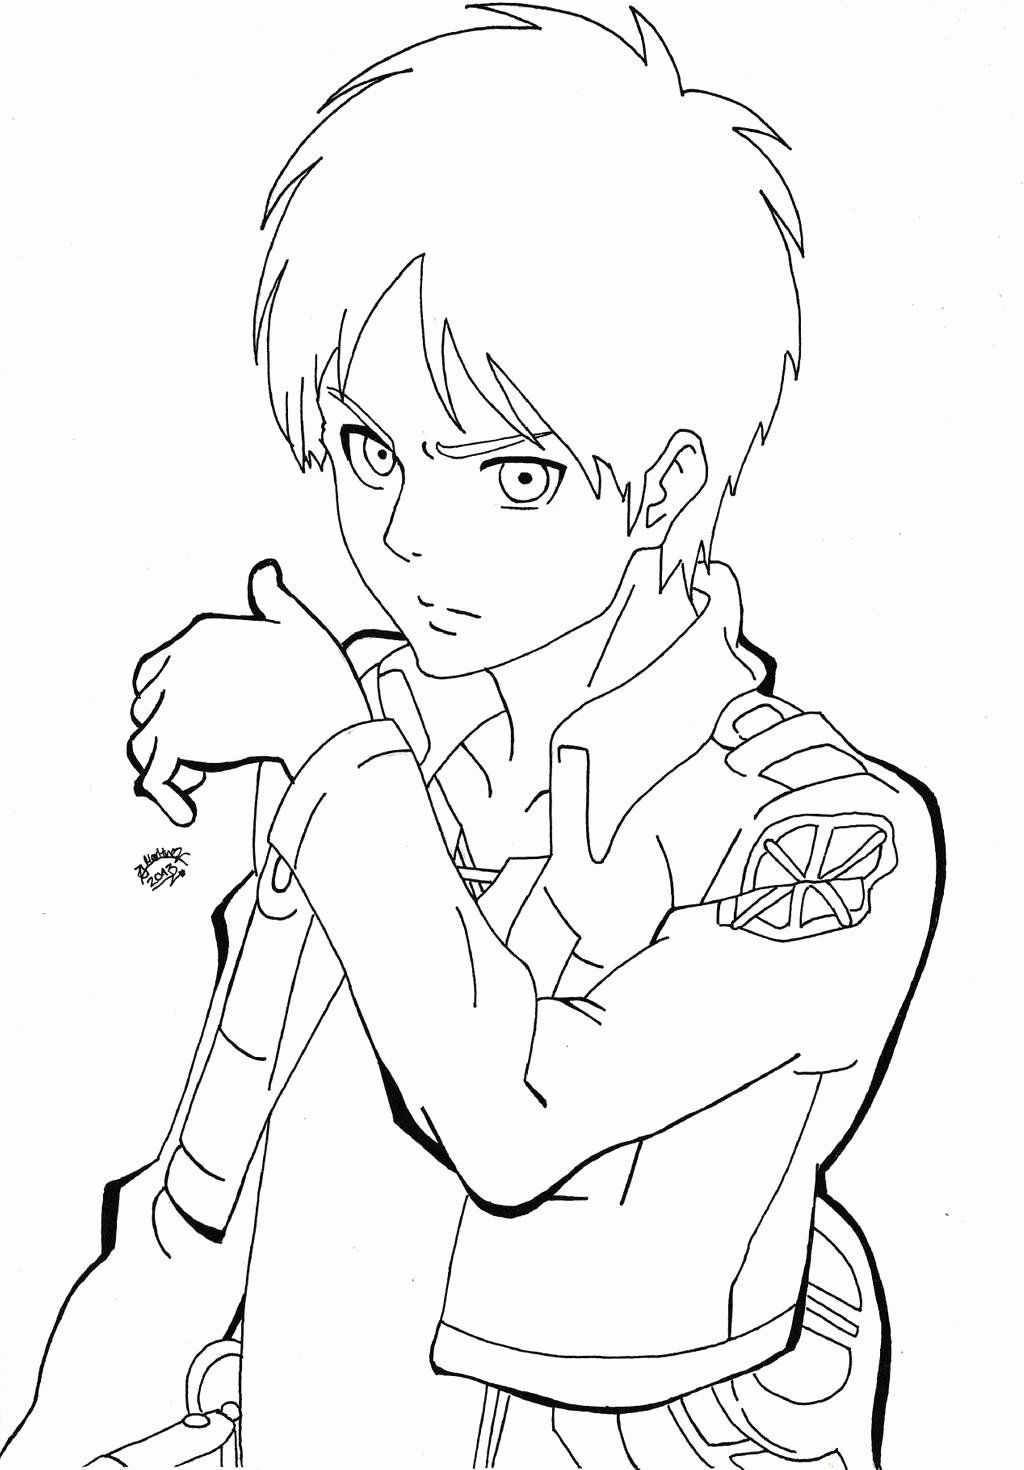 Attack On Titan Coloring Page Lovely Shingeki No Kyojin Eren Jaeger Lineart By Triigun On Coloring Pages Naruto Sketch Dragon Ball Super Art